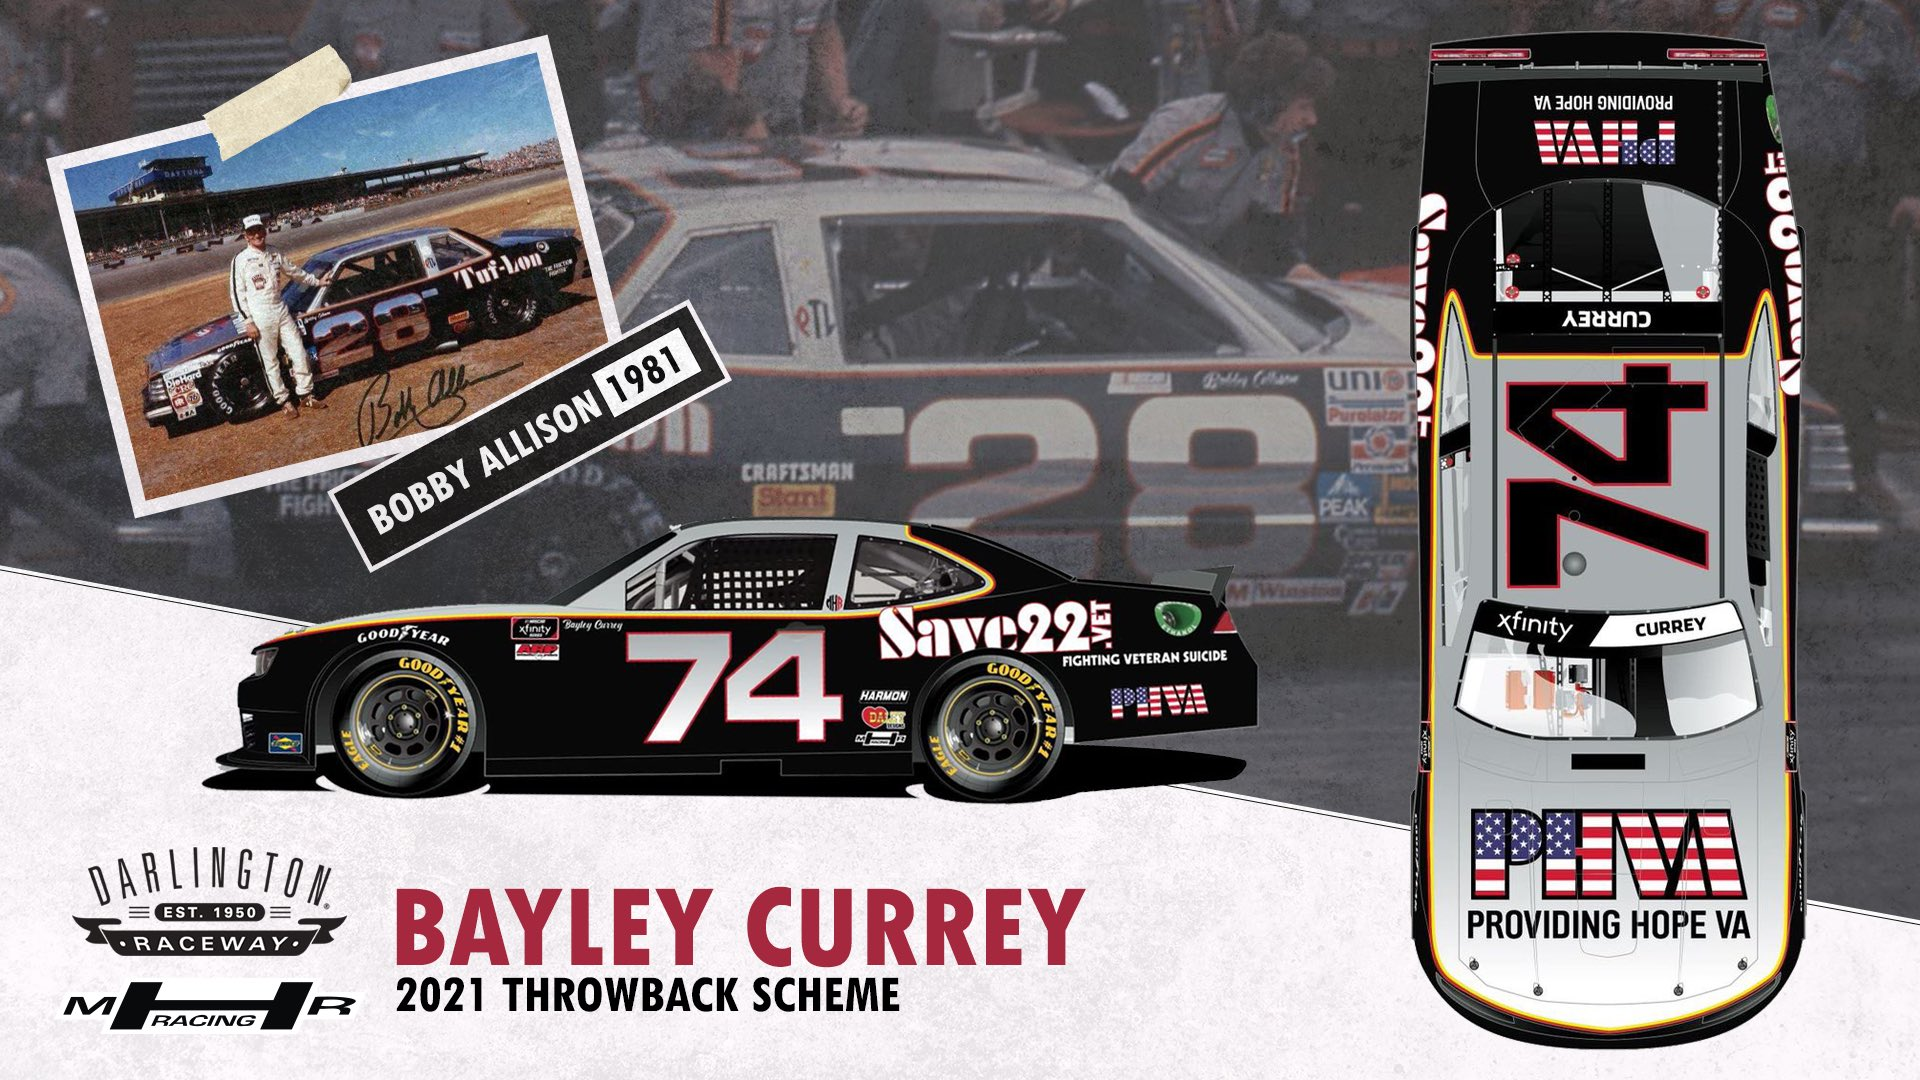 Bayley Currey 2021 Throwback